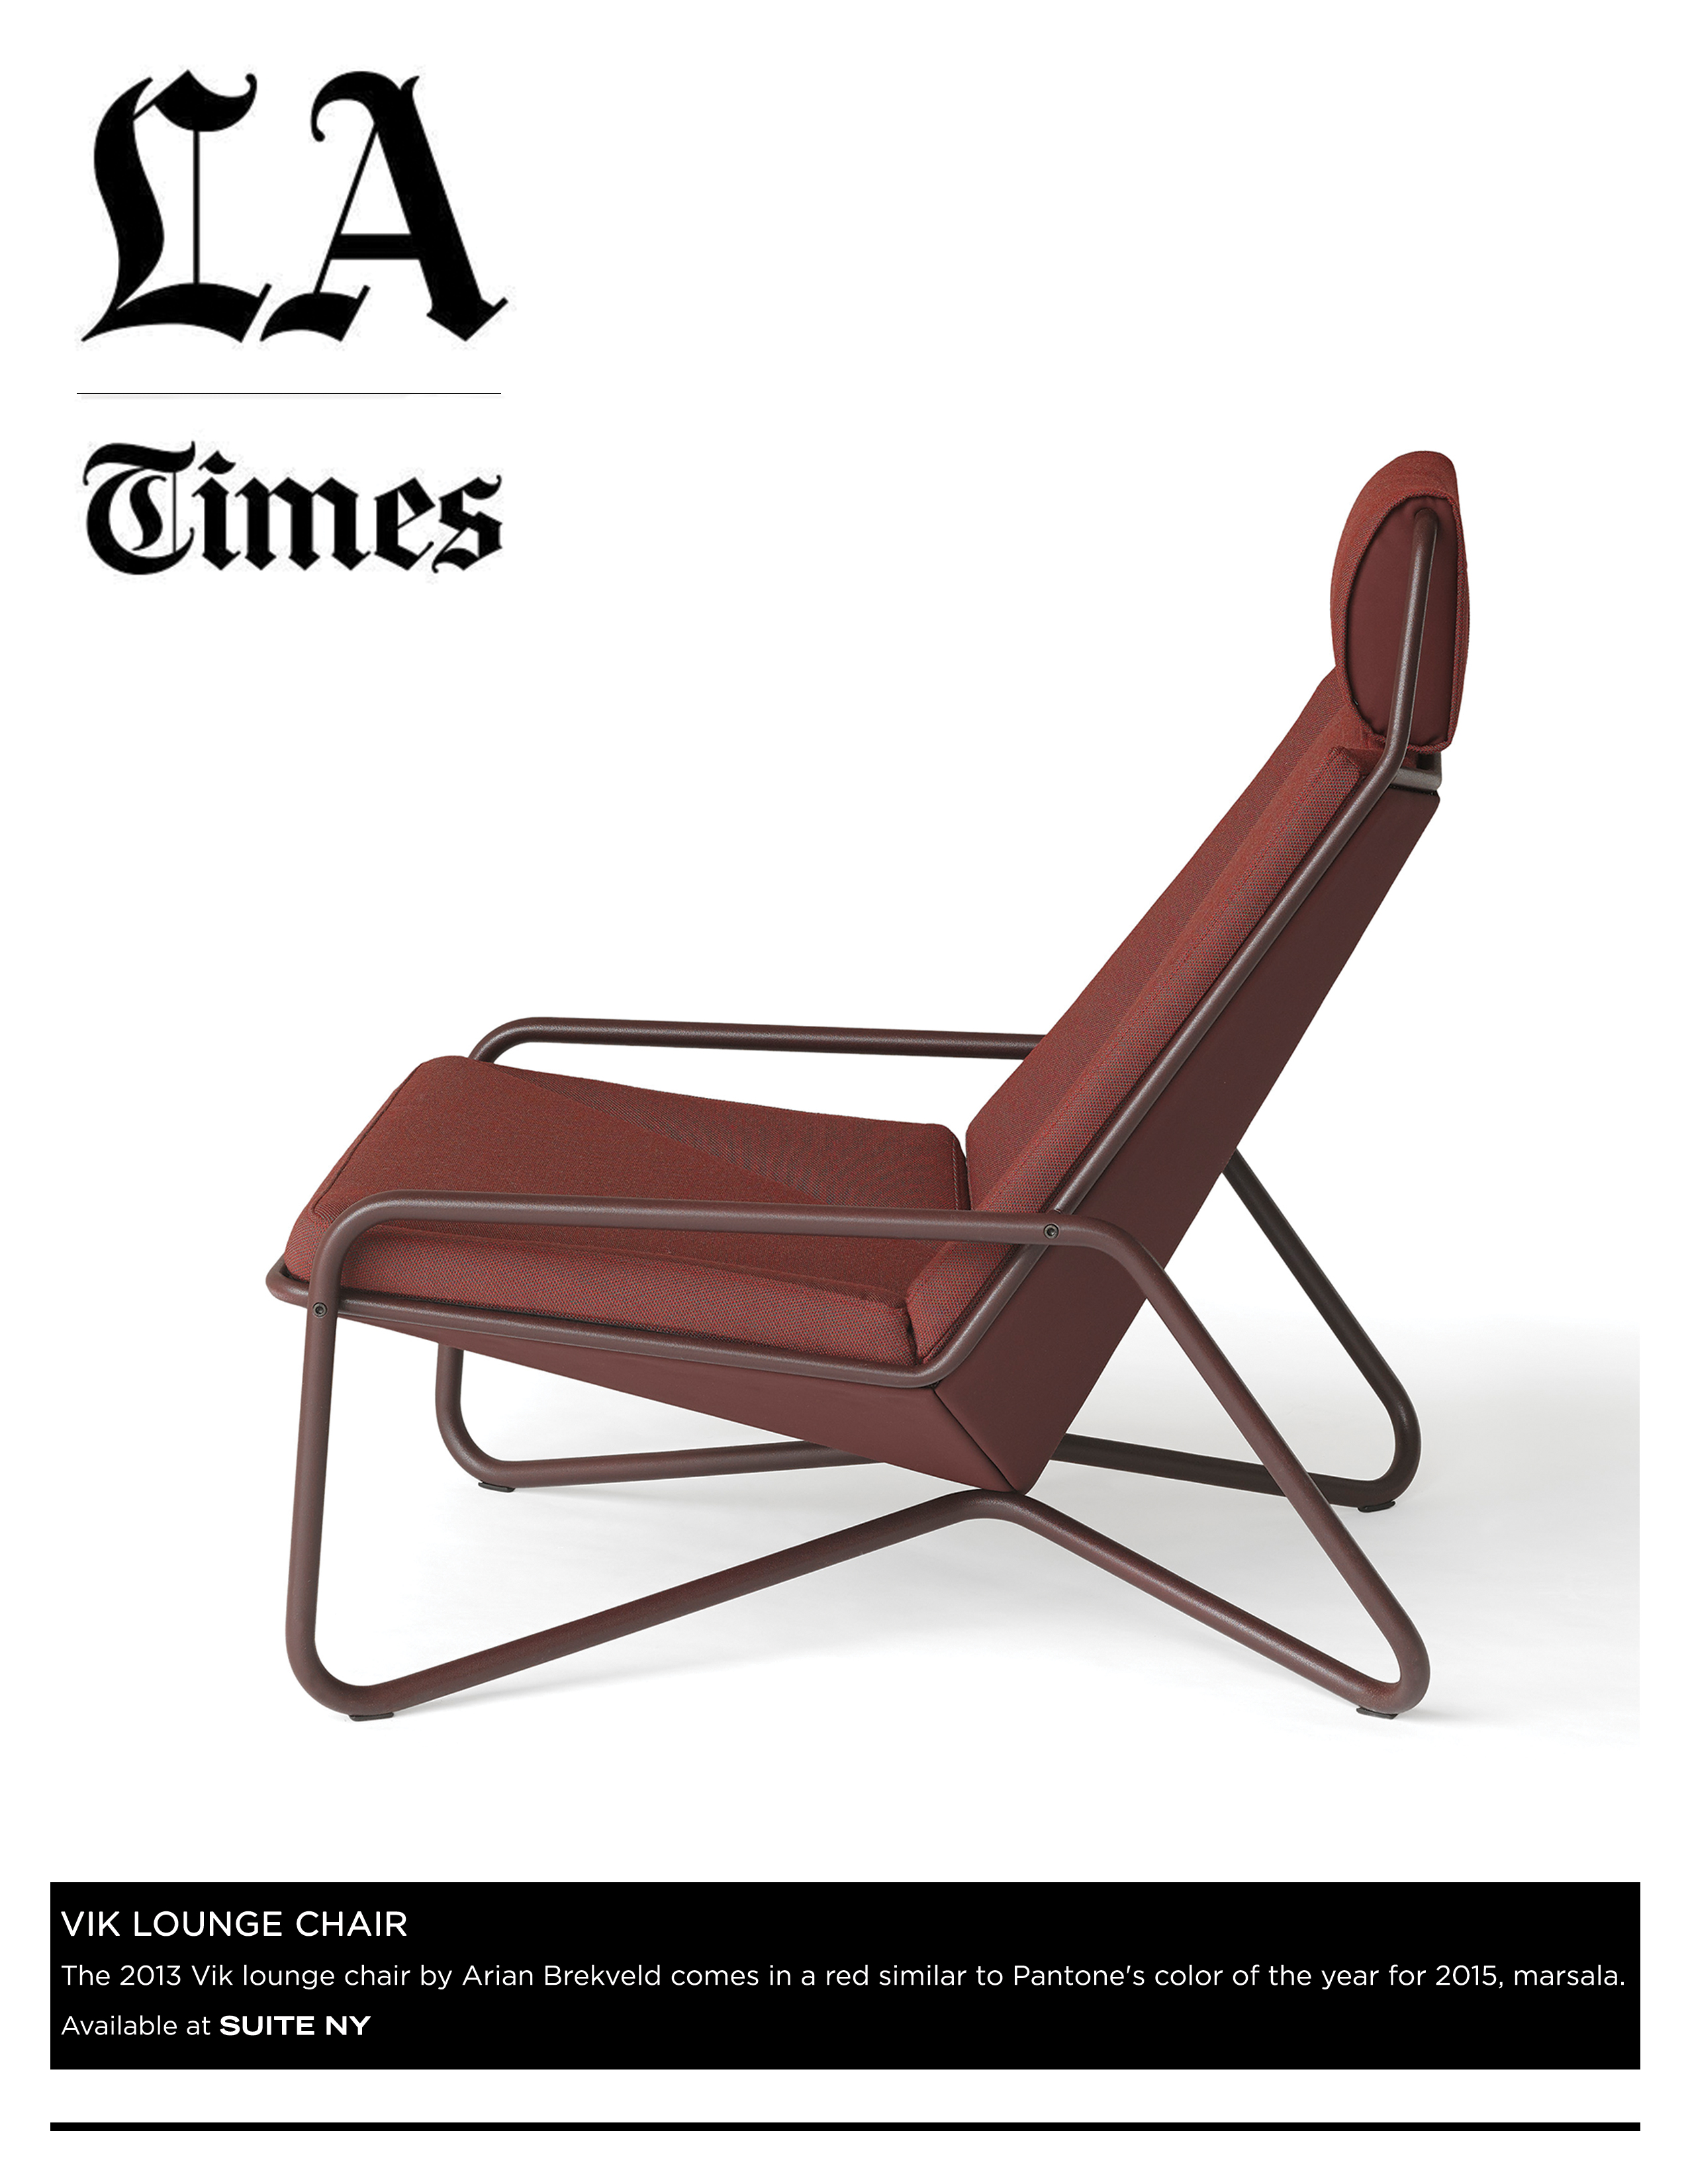 Spectrum, Arian Brekveld, Vik Lounge, Lounge Chairs, Iconic chairs, scandinavian design, marsala, pantone color of the year, 2015, suiteny, suiteny.com, suite new york